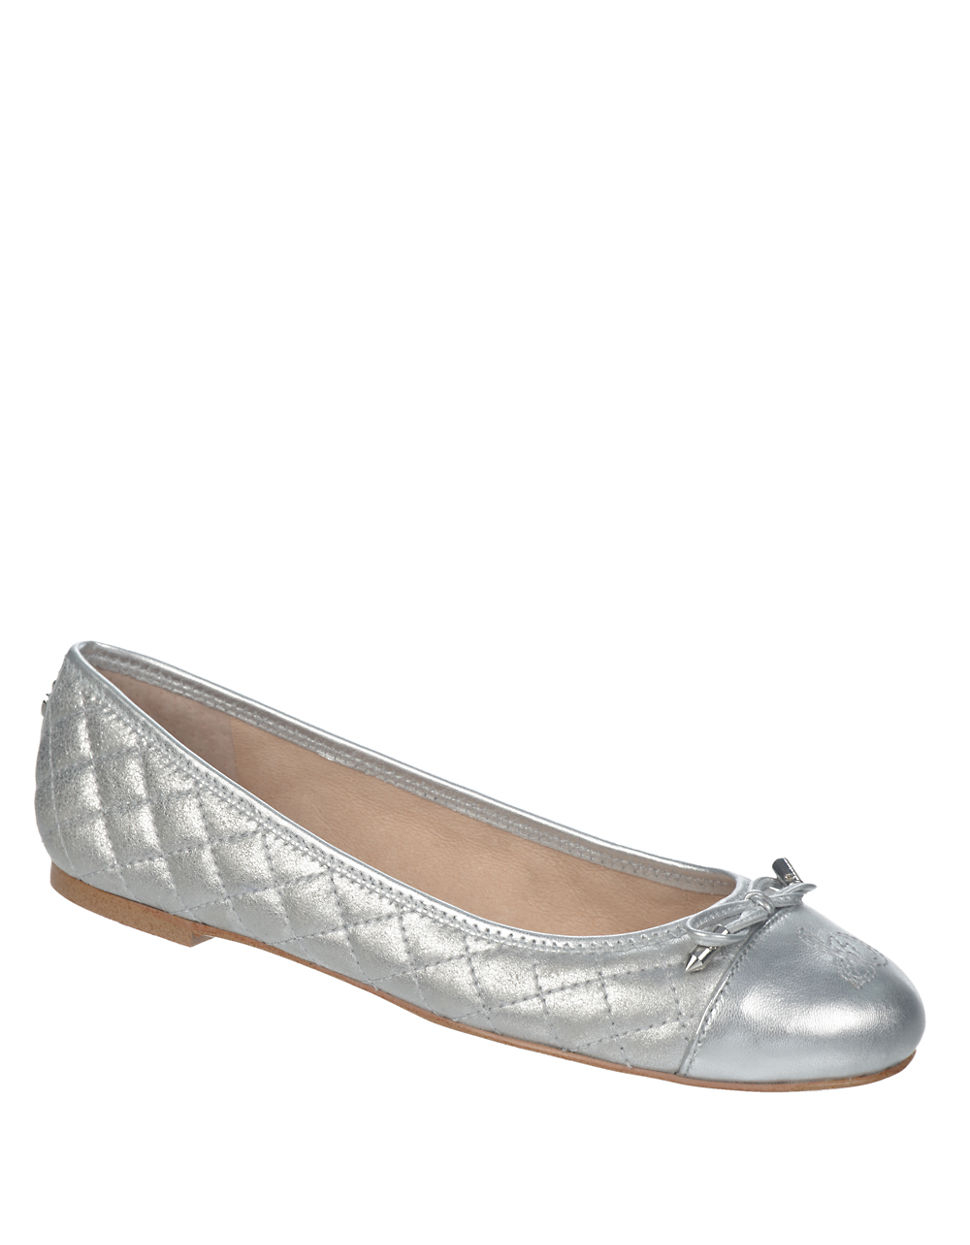 380a0357c Lyst - Sam Edelman Becka Quilted Flats in Metallic